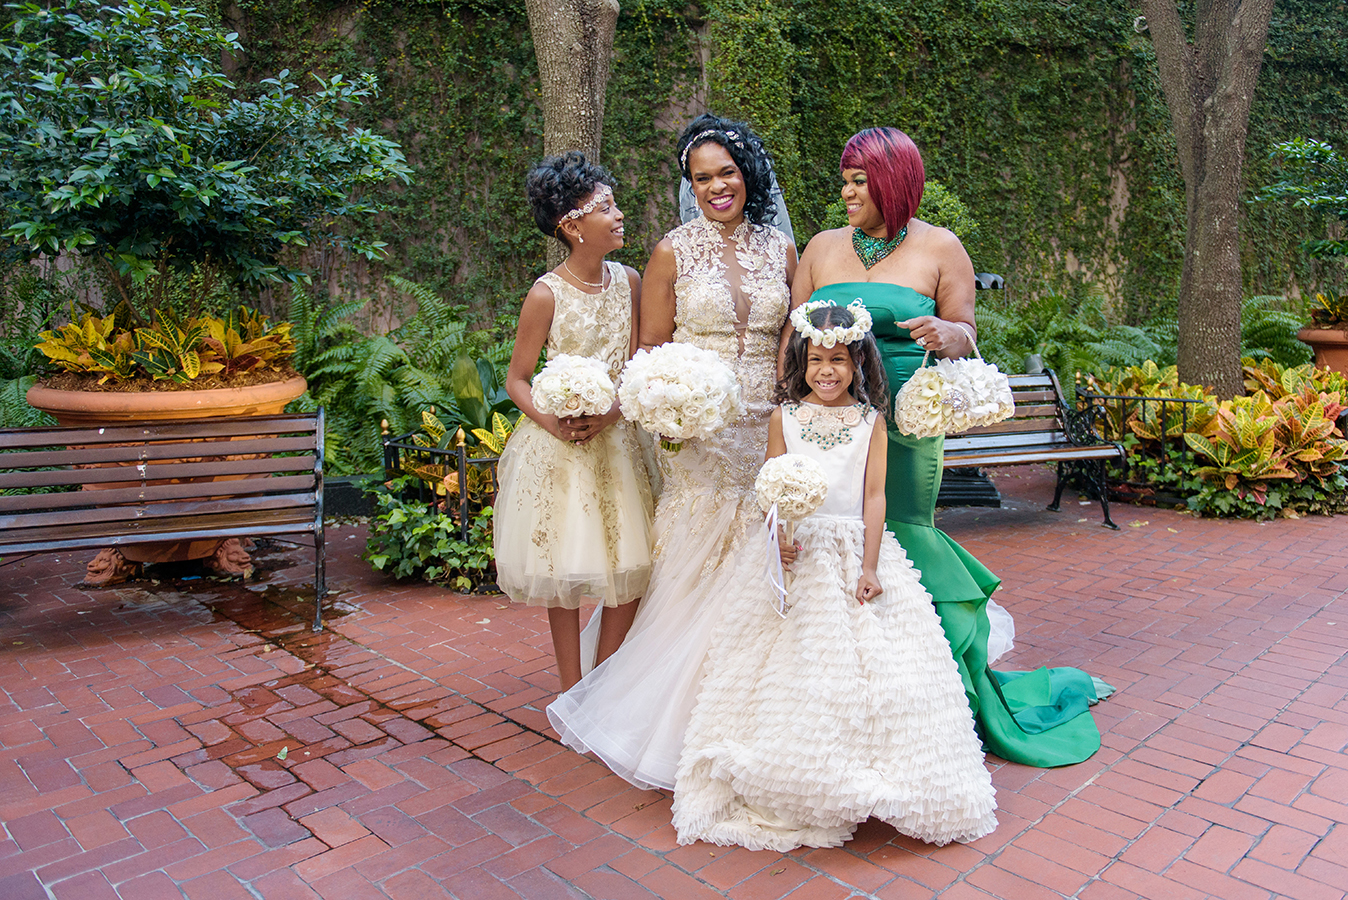 Doliecha and her bridesmaids in the courtyard at Windsor Court Hotel in New Orleans